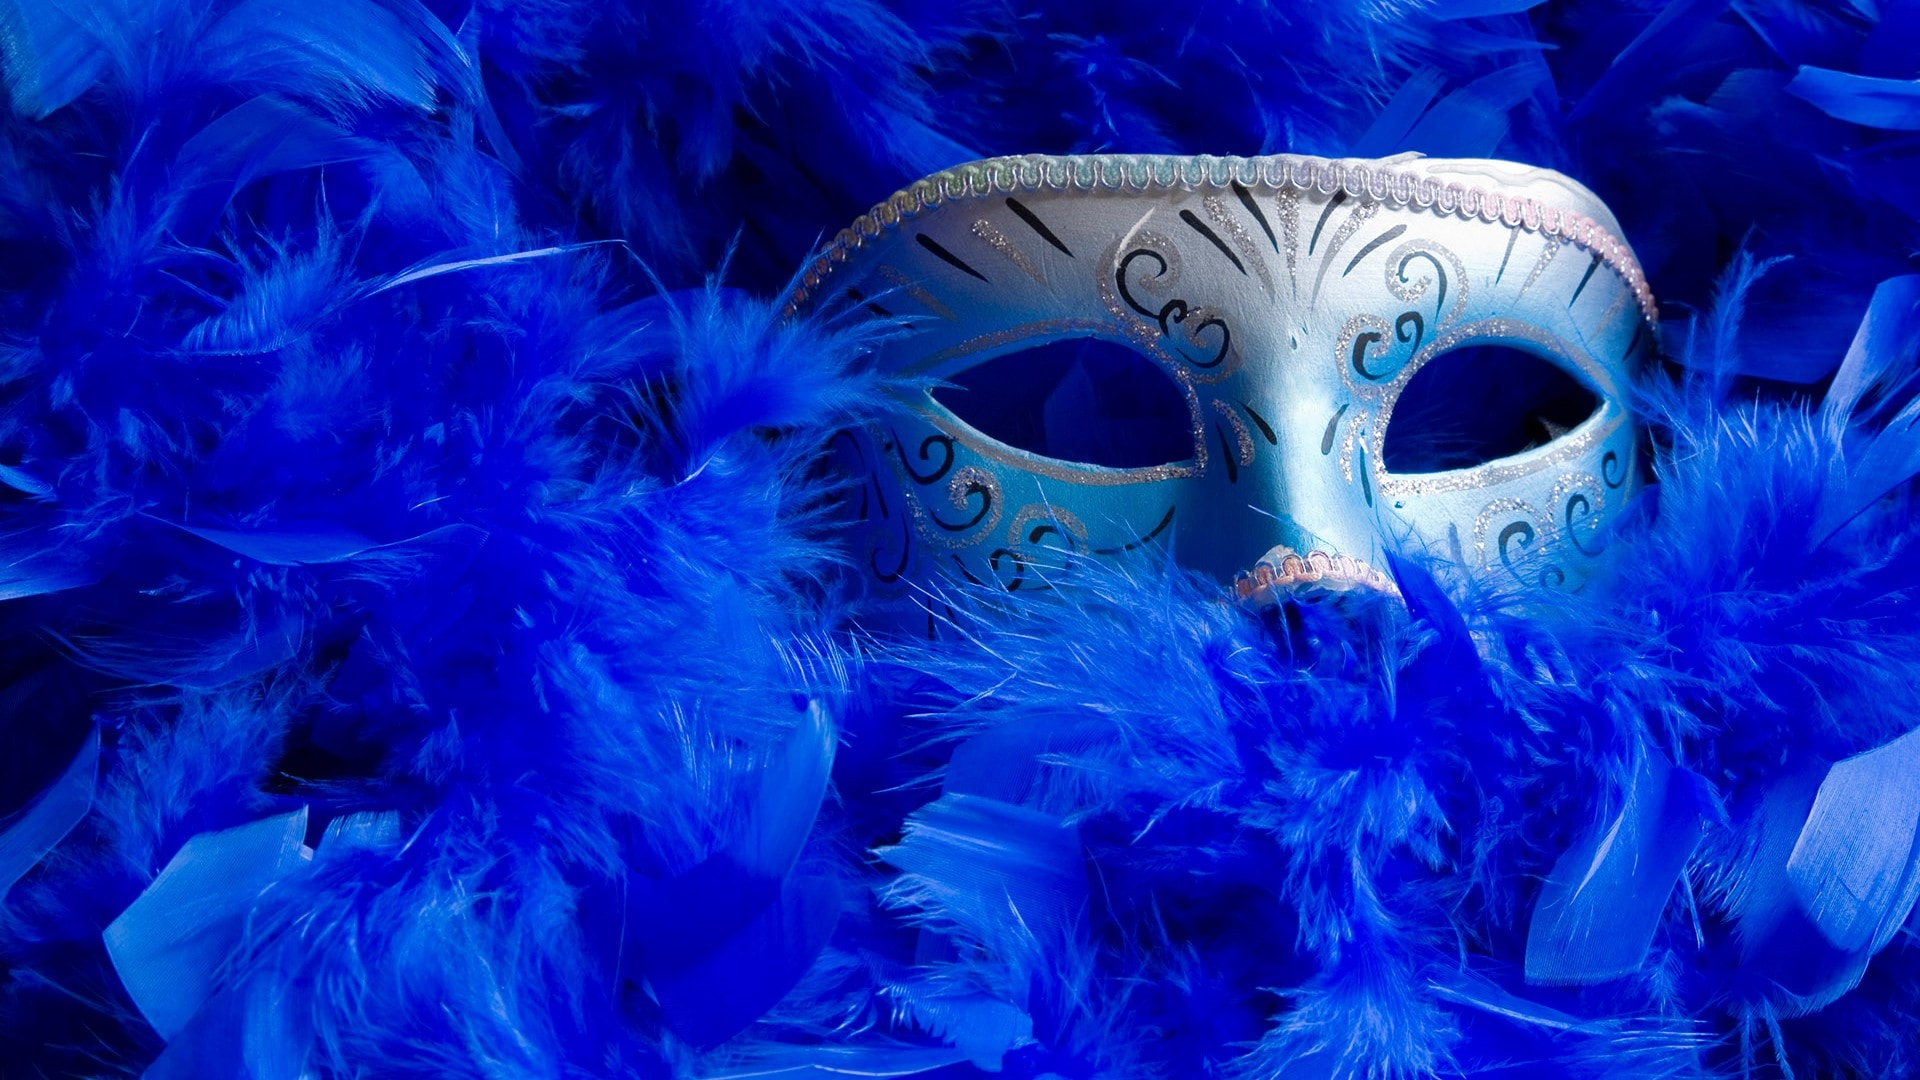 Mardi Gras Full hd wallpapers